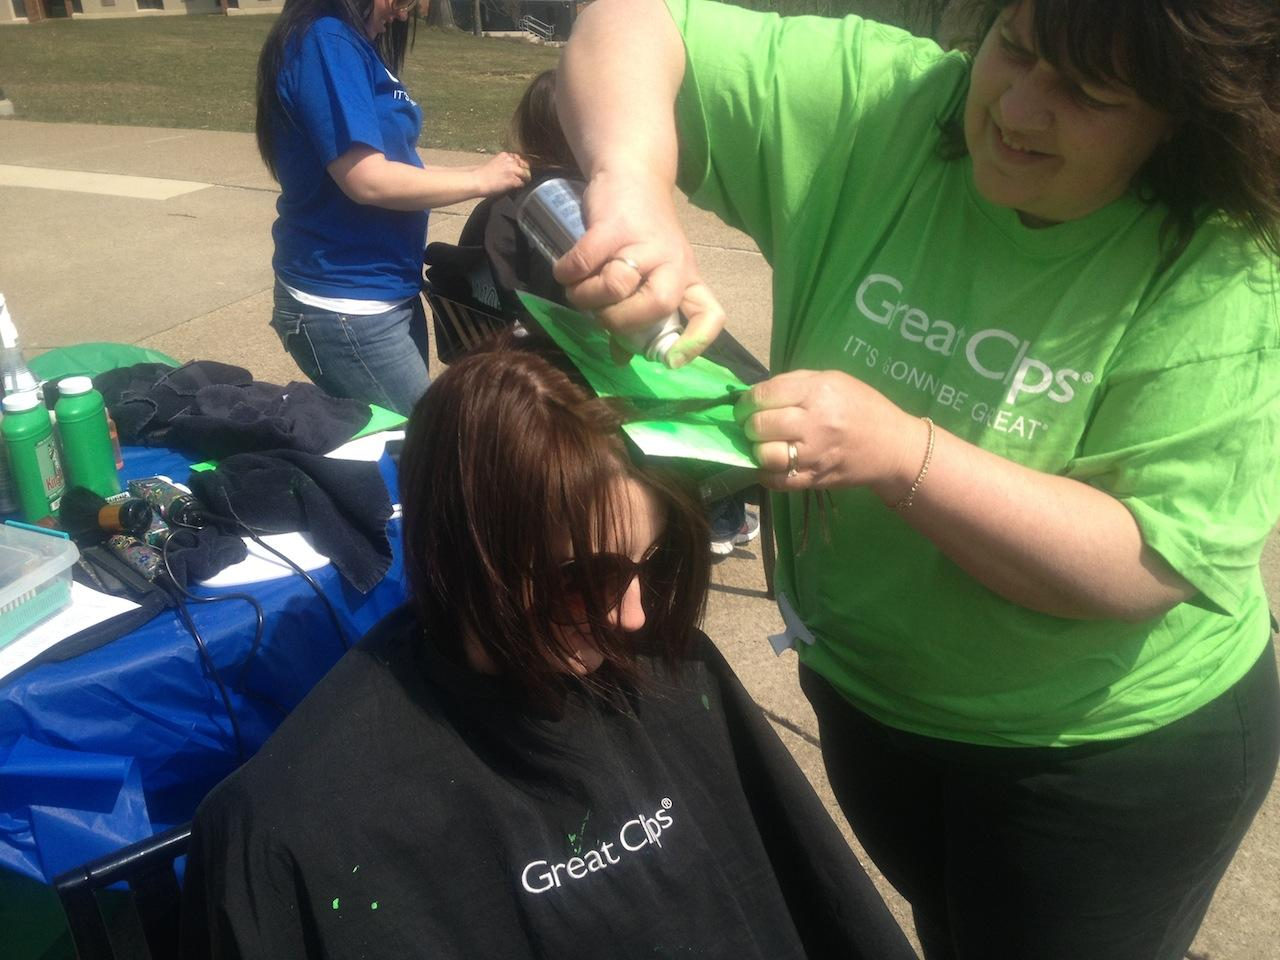 Brave the Shave encouraged students to dye a green streak in their hair or get a buzz cut in support of the fight against childhood cancer.